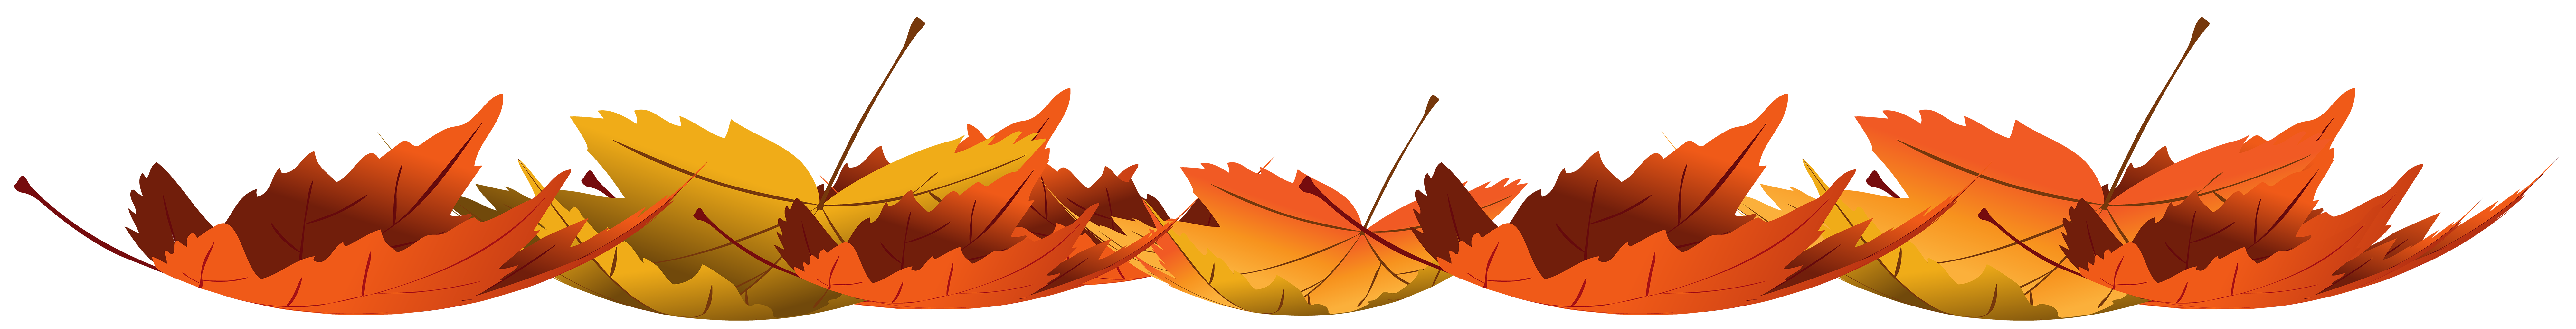 Excited clipart thankful. Fallen autumn leaves transparent